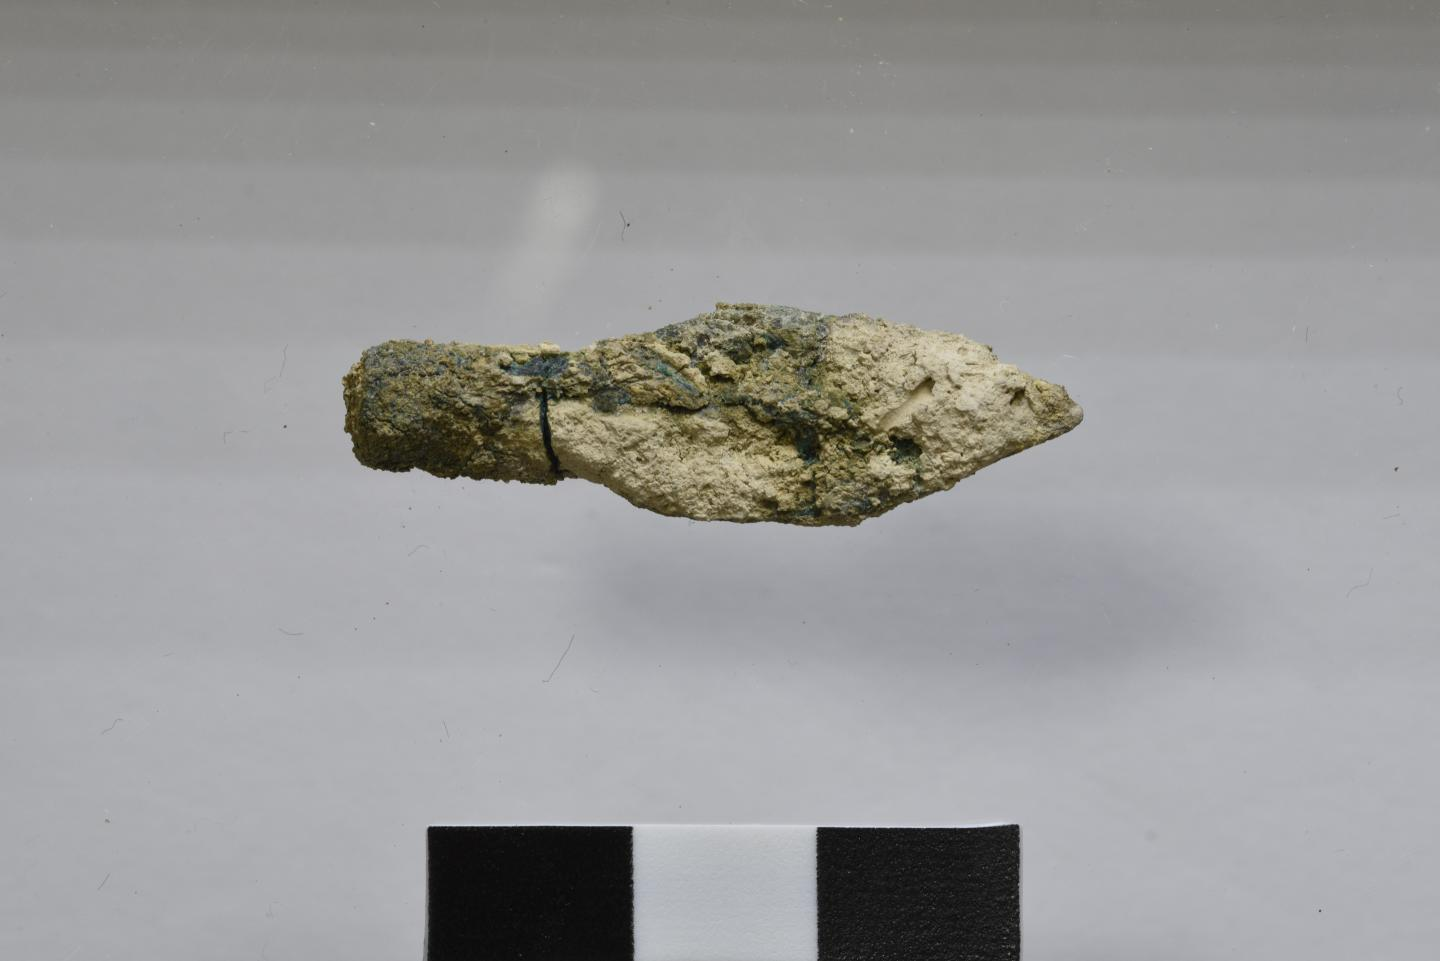 Babylonian arrowhead found at Mount Zion